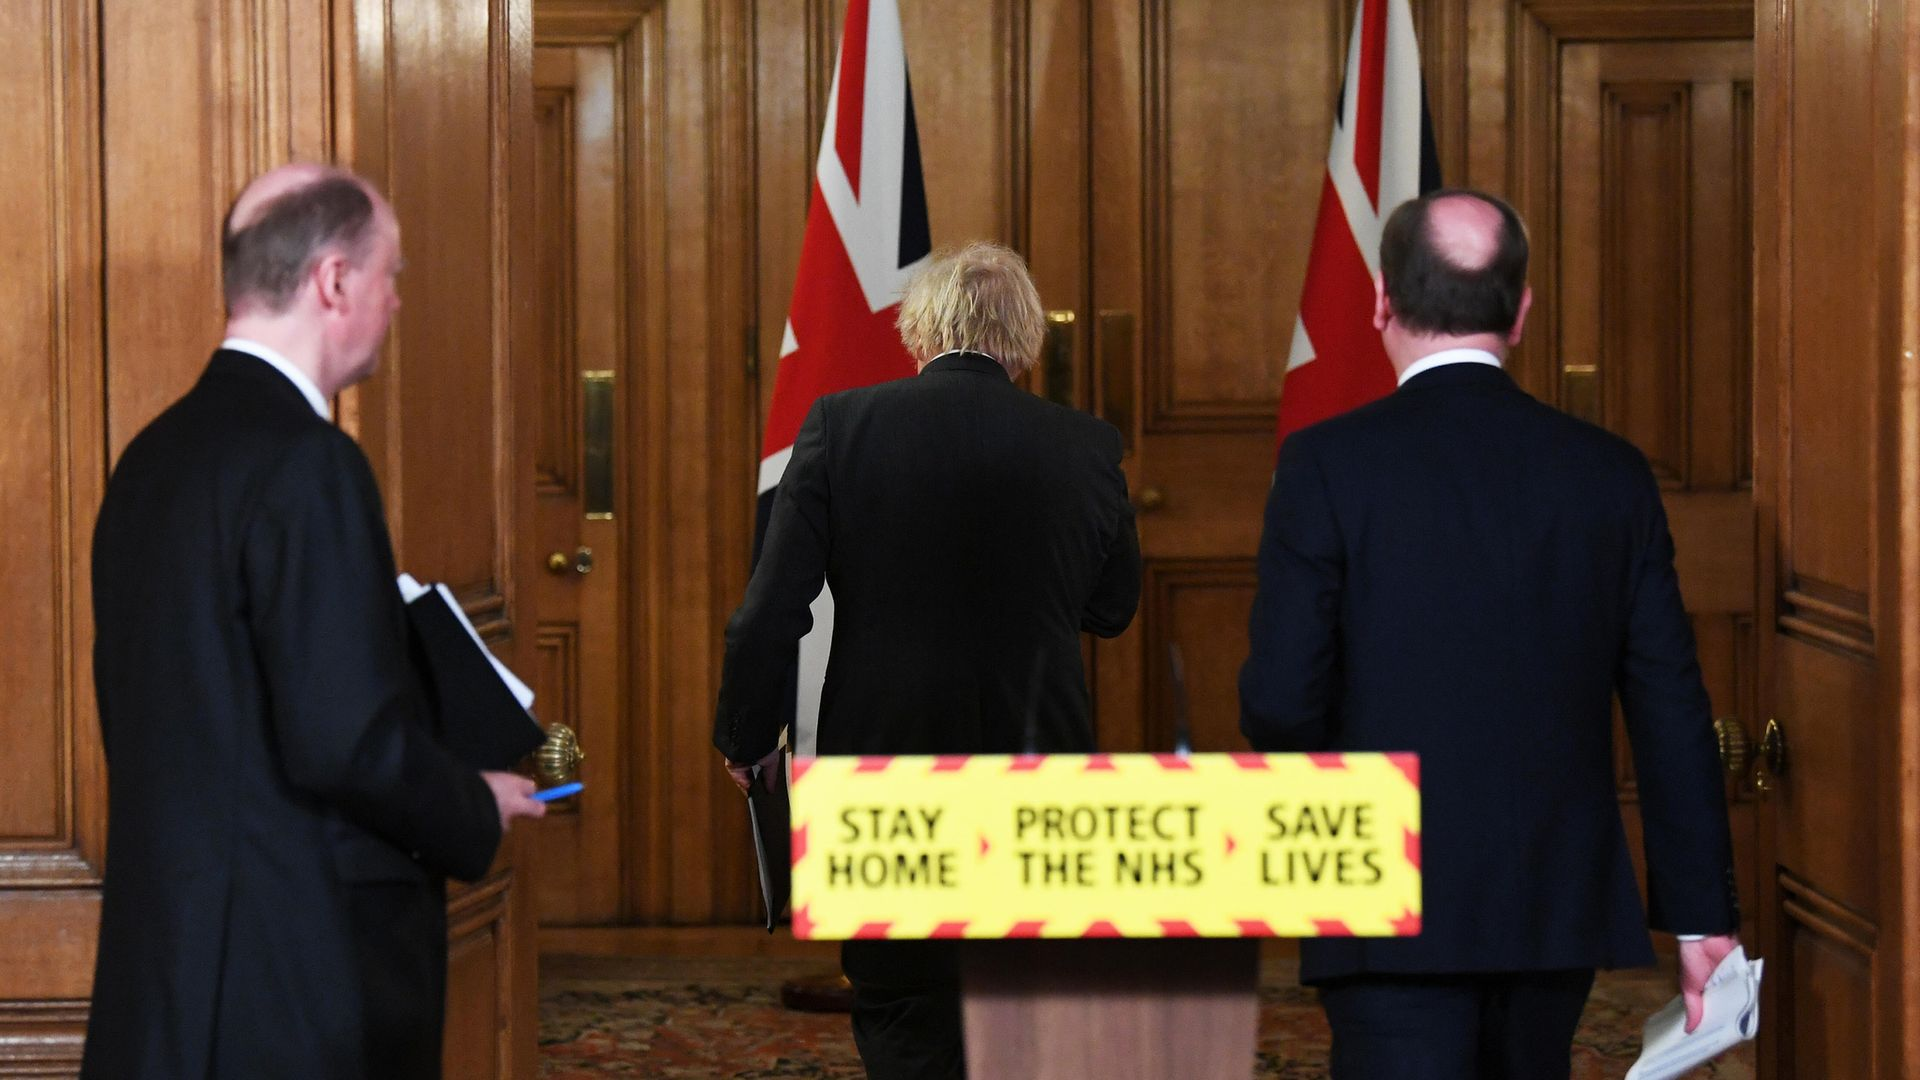 (left to right) Chief Medical Officer Chris Whitty, Prime Minister Boris Johnson and Chief Executive of the National Health Service in England, Sir Simon Stevens - Credit: PA